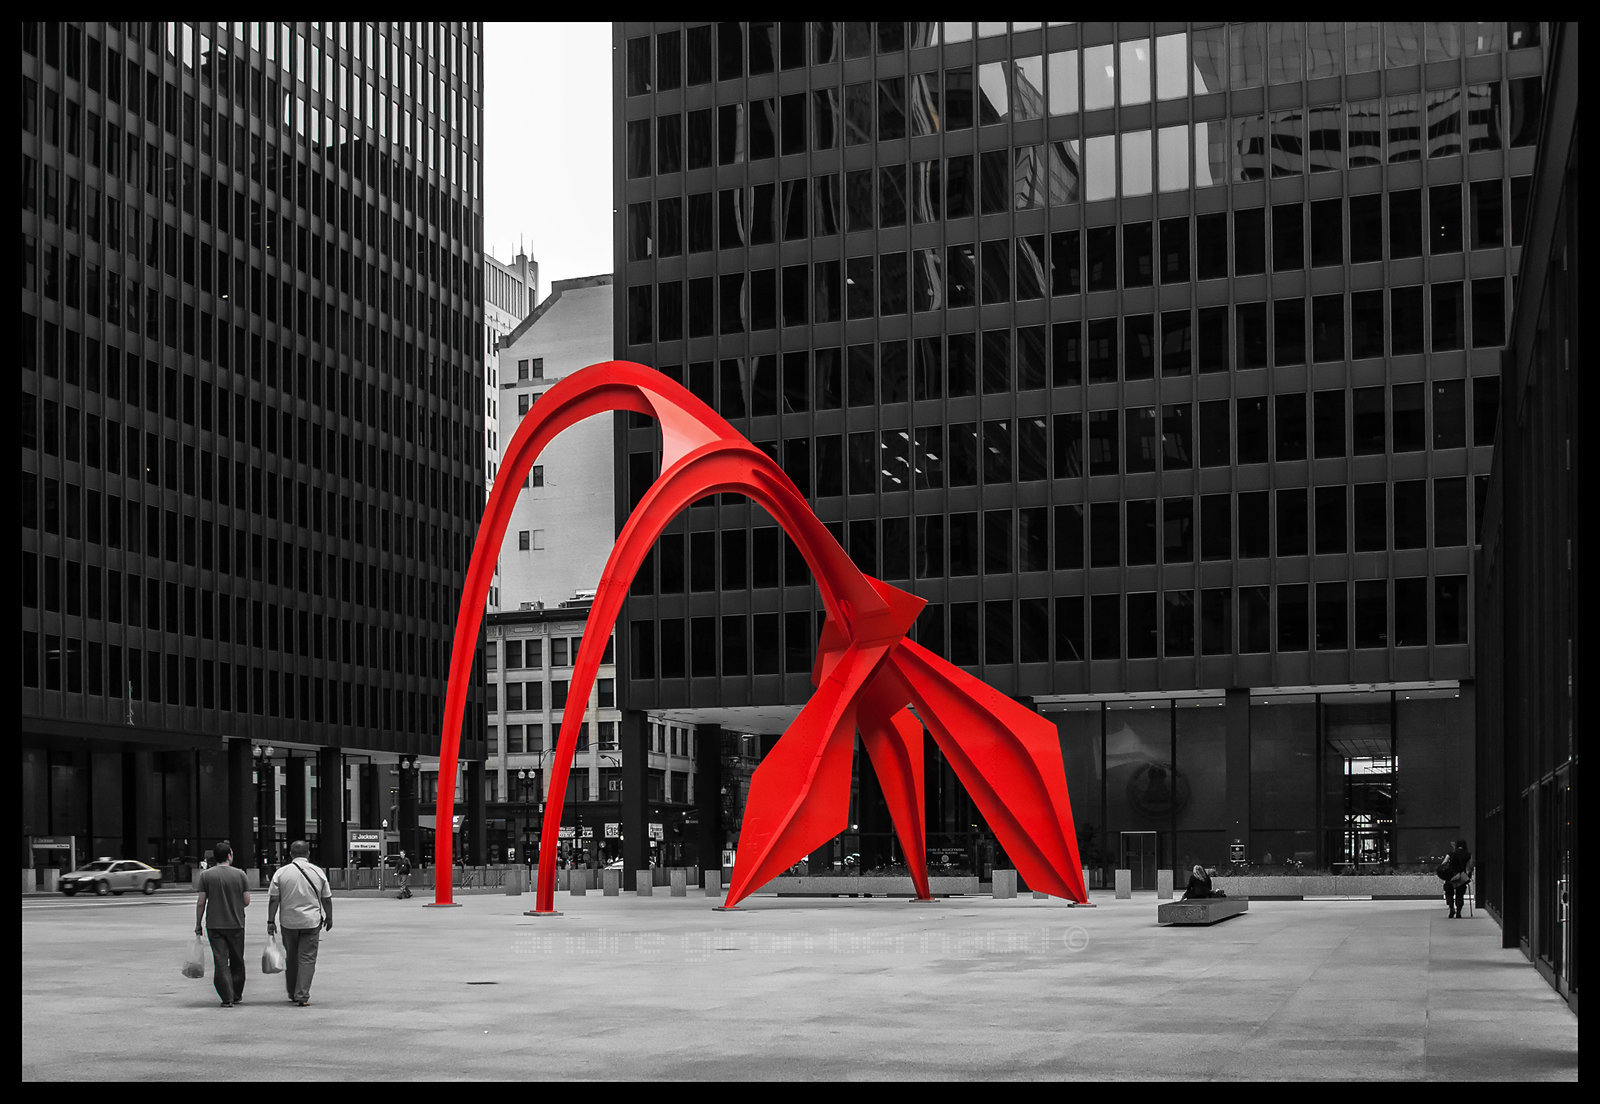 The Flamingo (by Alexander Calder) - Kluczynski Federal Building (Ludwig Mies van der Rohe)